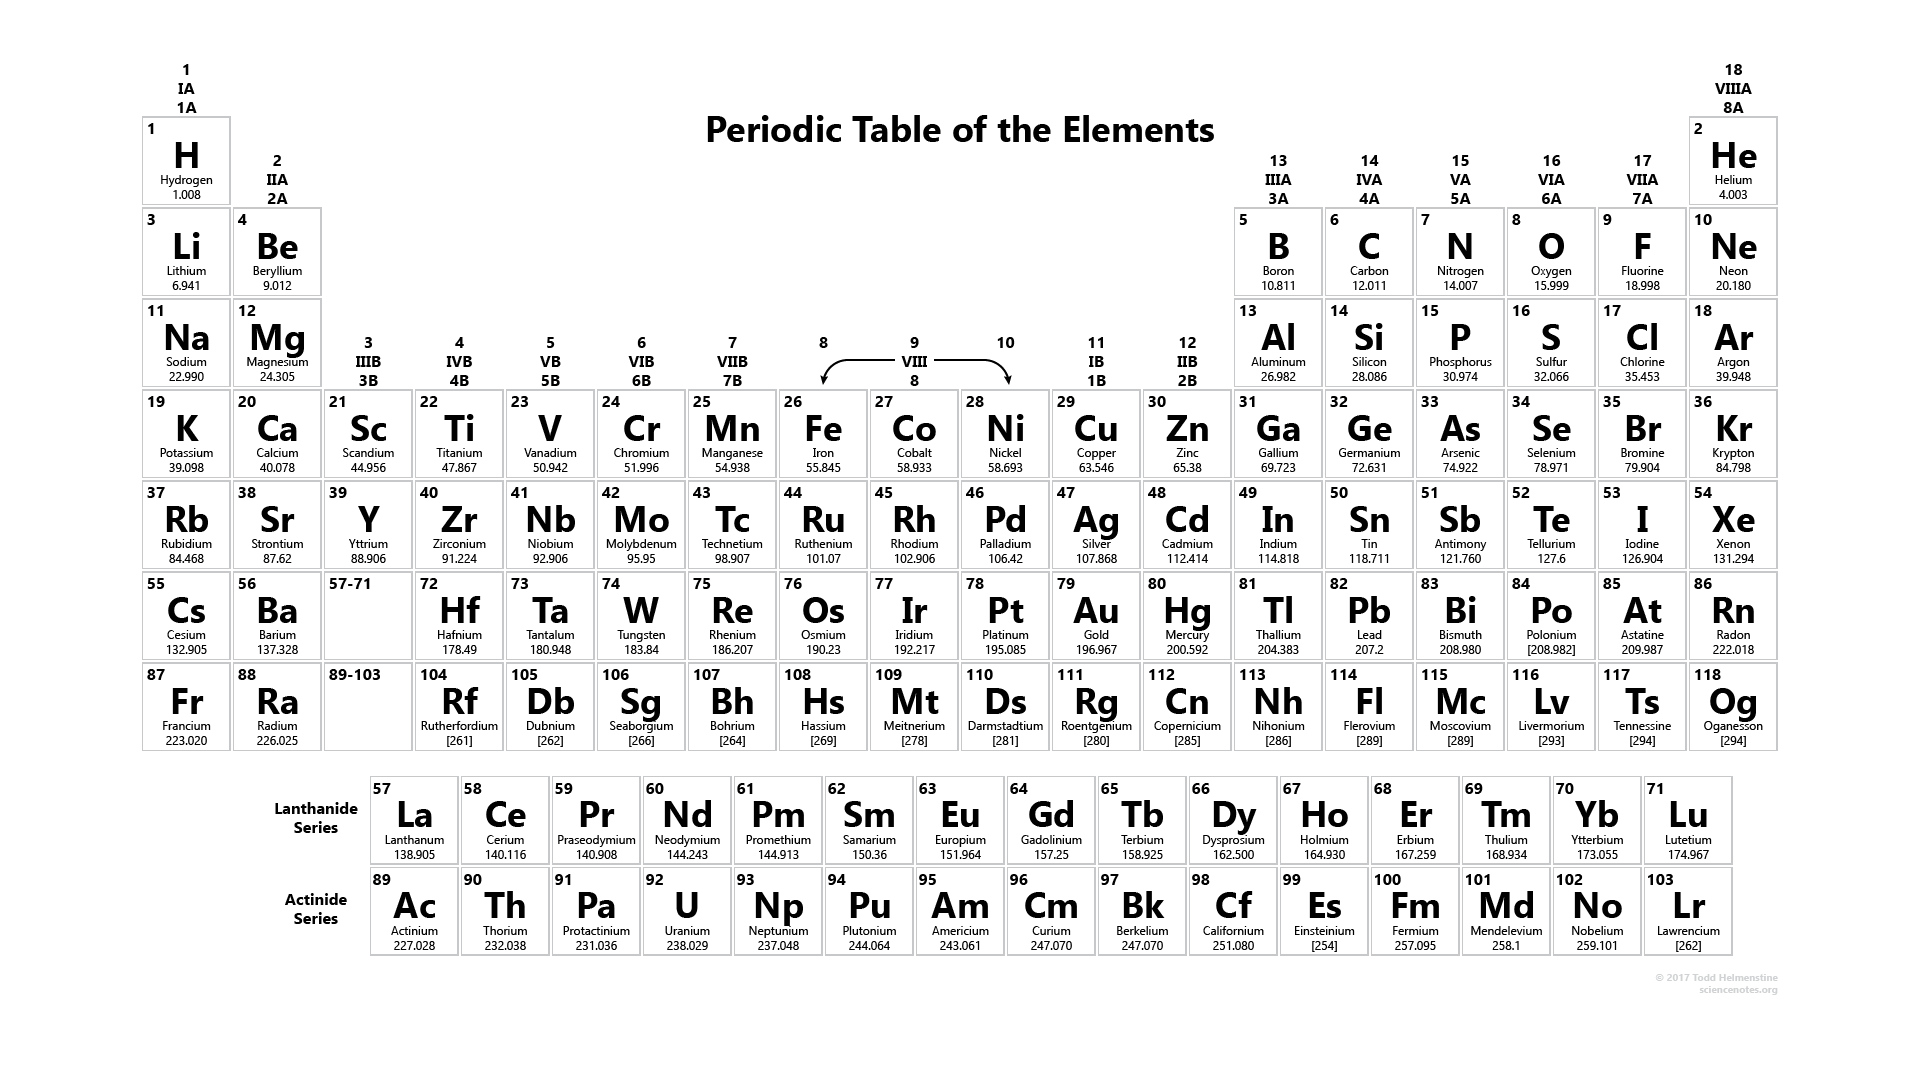 This Is The Black And White Periodic Table Edition